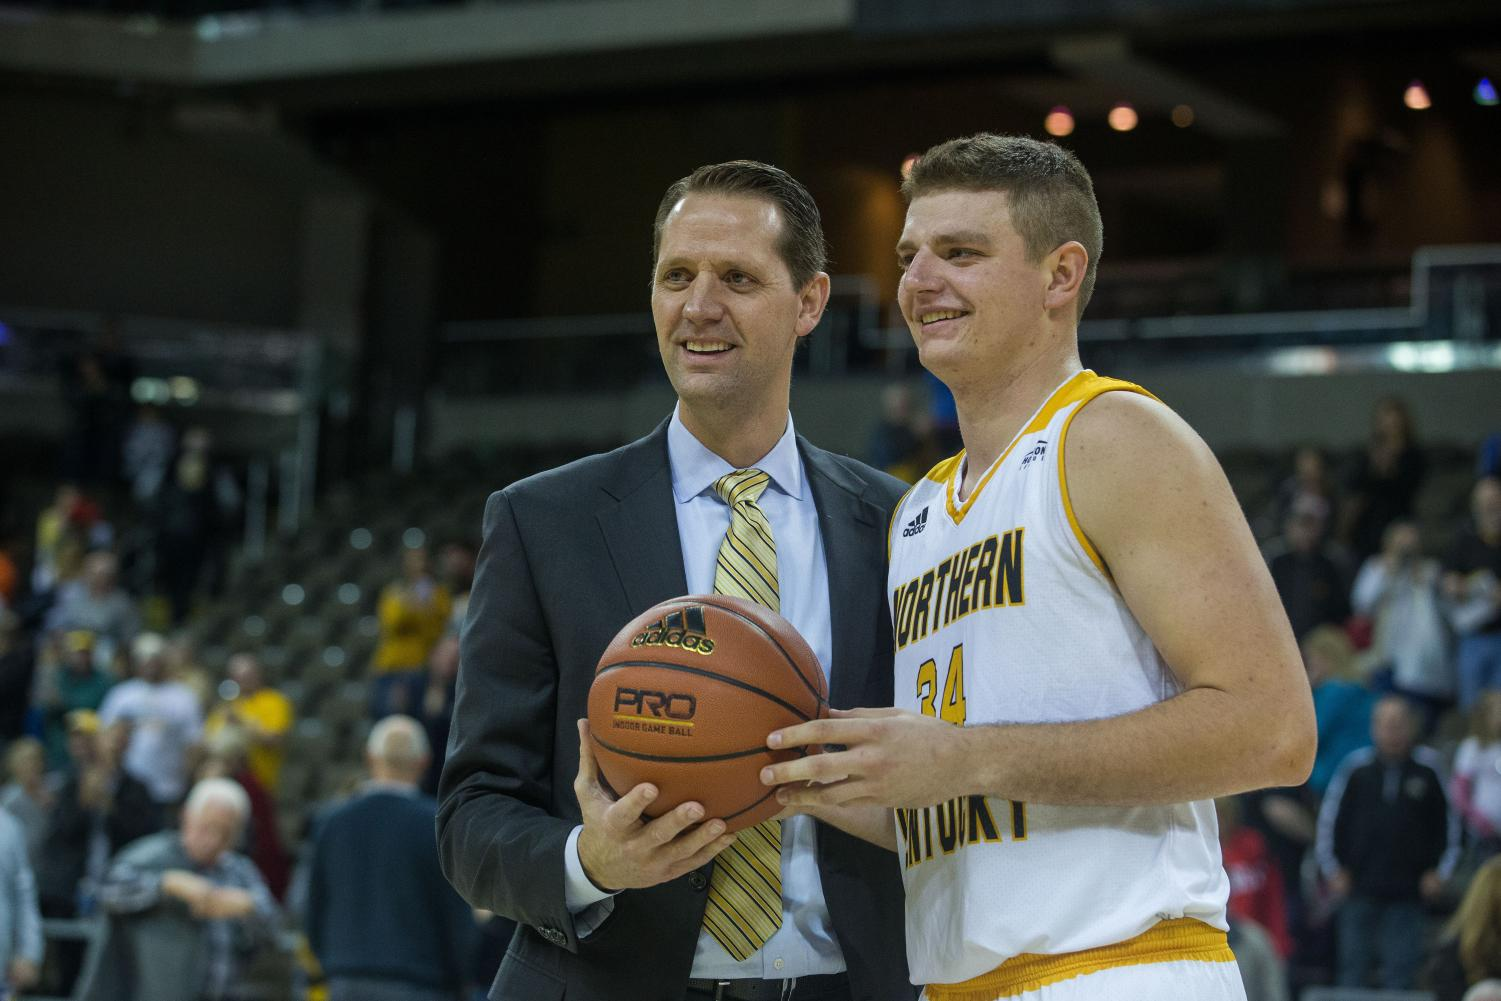 Head+Coach+John+Brannen+congratulates+Drew+McDonald+%2834%29+on+his+1000th+career+point+in+the+game+against+Morehead.+